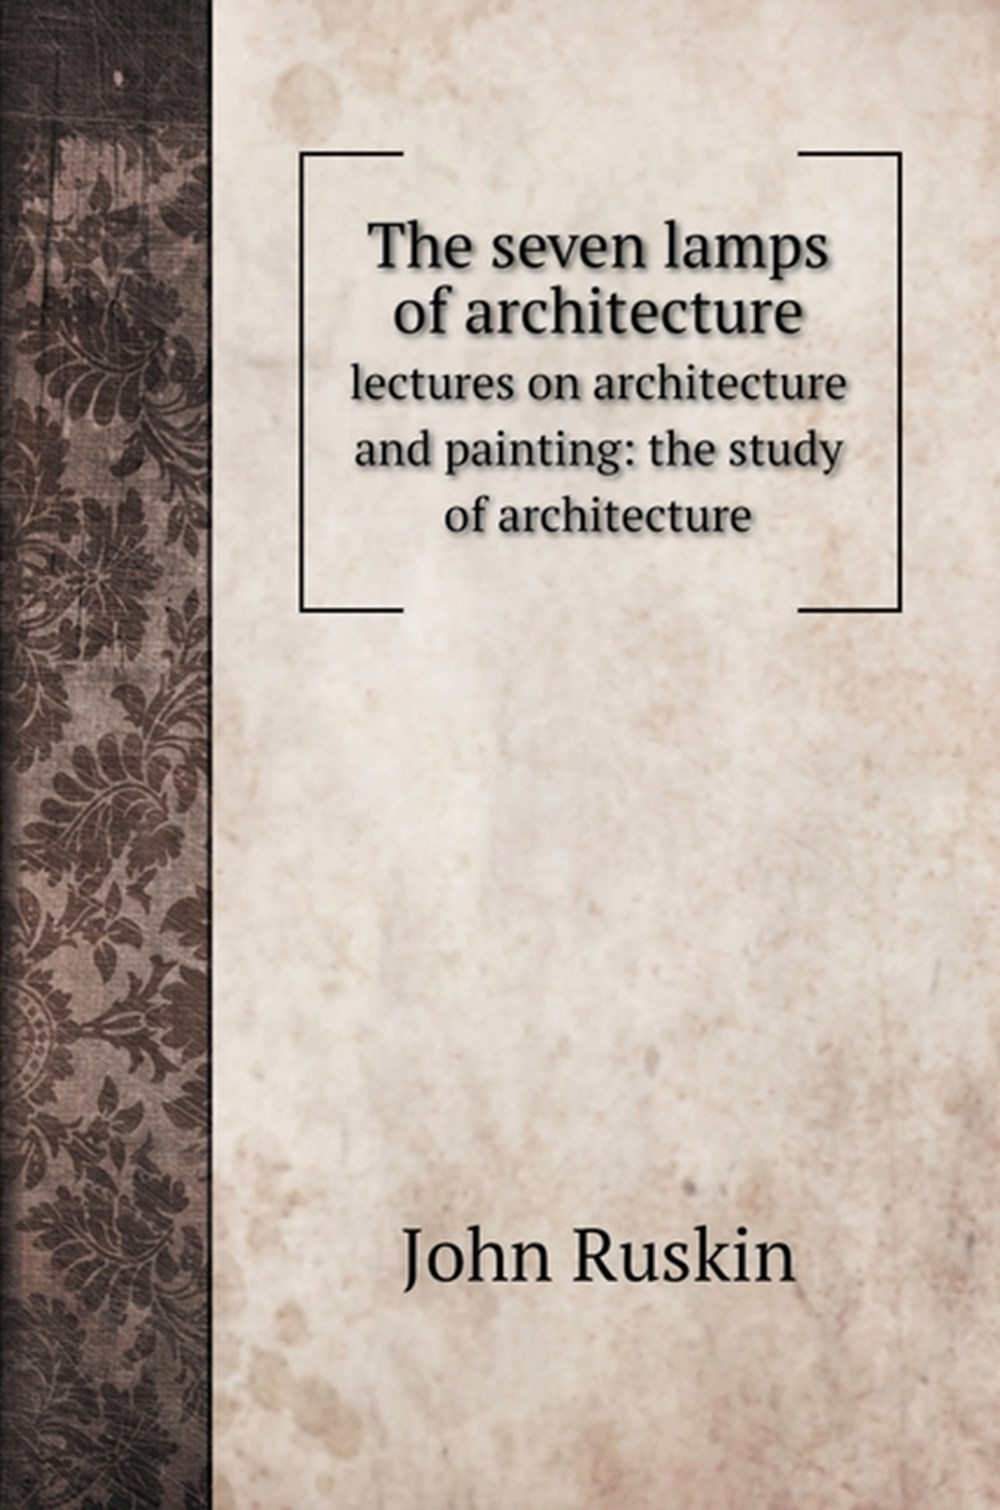 seven lamps of architecture lectures on architecture and painting: the study of architecture